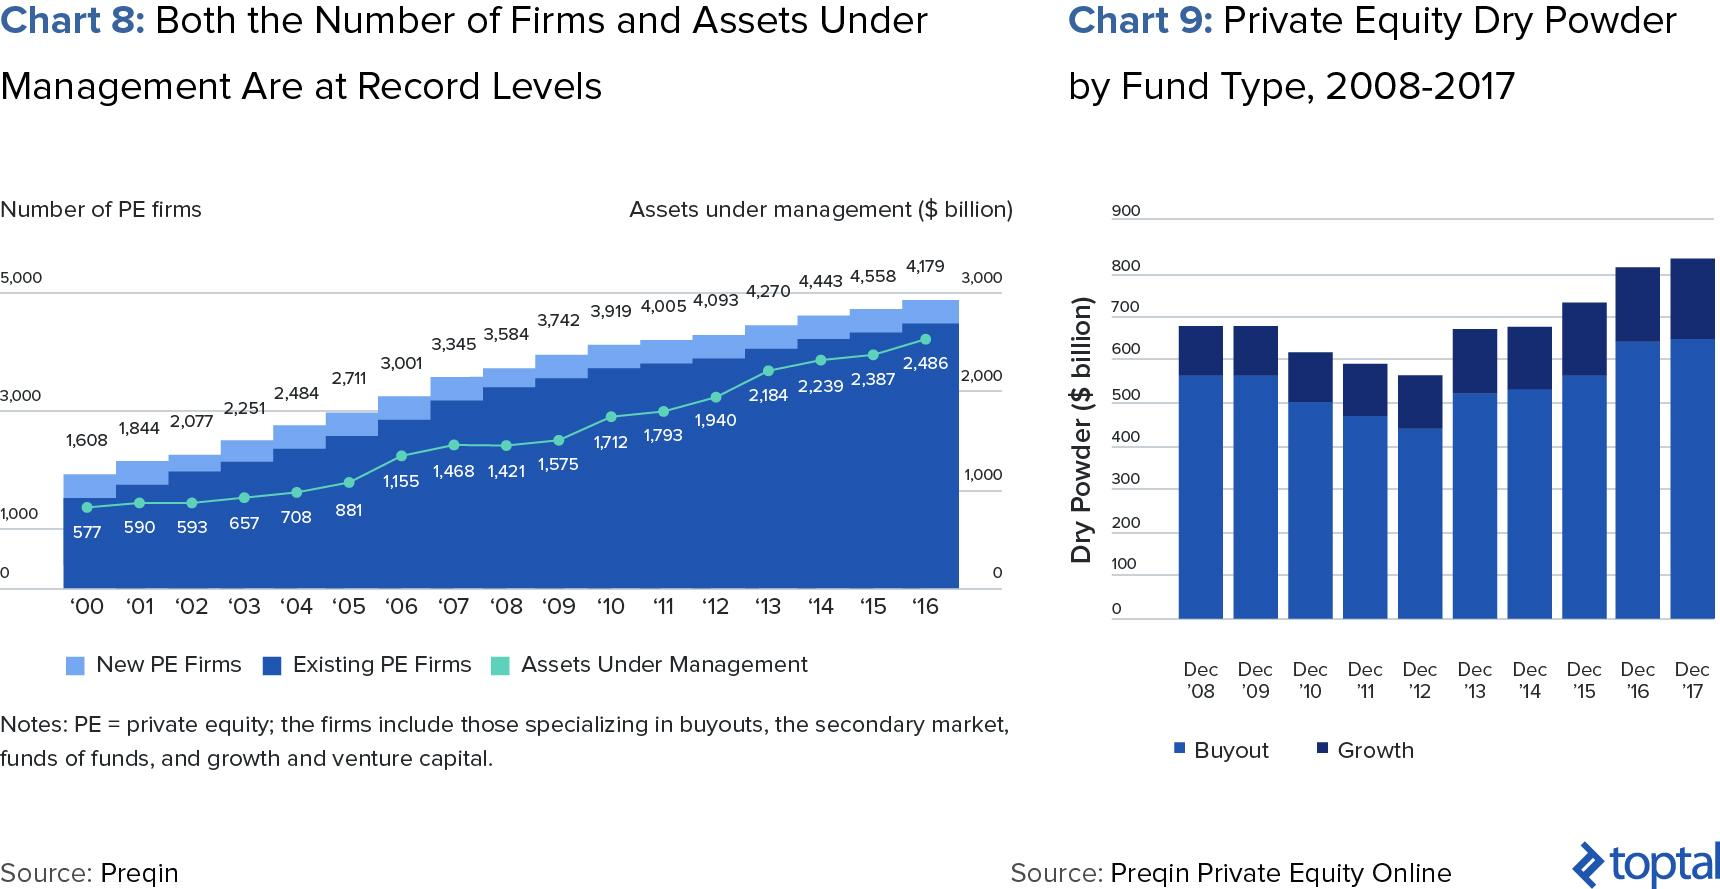 Chart 8: Both the Number of Firms and Assets under Management Are at Record Levels; and Chart 9: private equity Dry Powder by Fund Type, 2008-2017